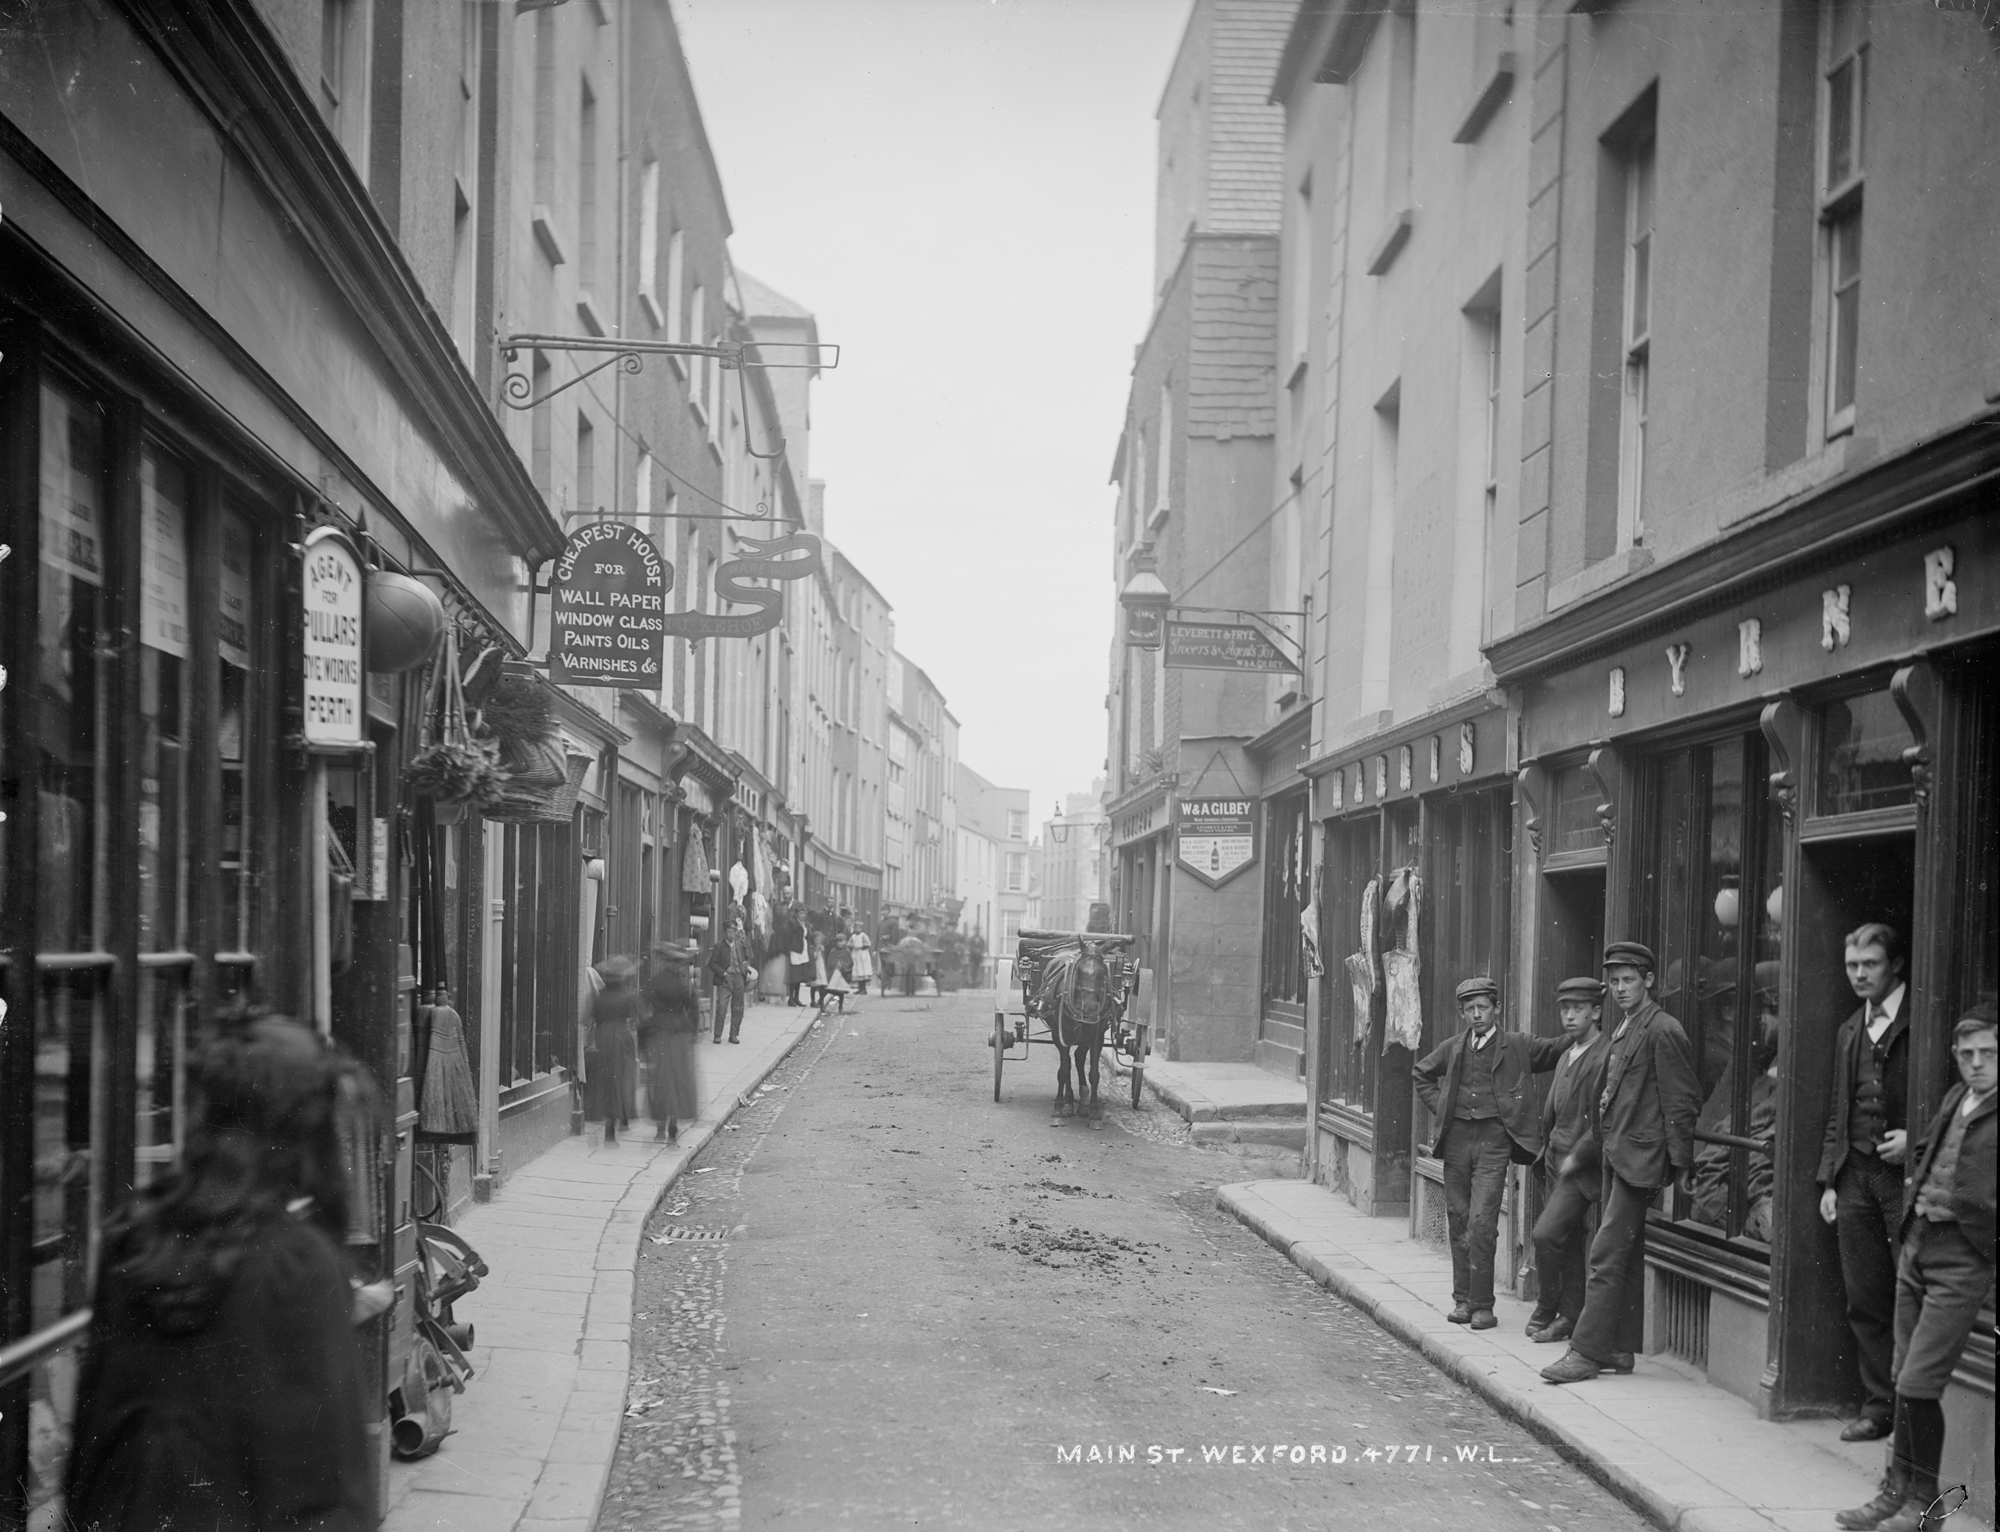 Old photo of Main Street, Wexford